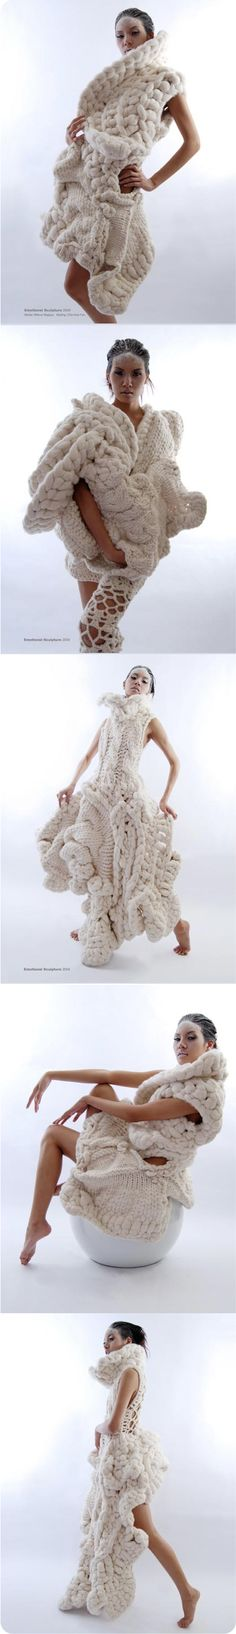 Constructed knitwear. Designs by Johan Ku - Emotional Sculpture (2004) Collection. #Fashion #Art #White